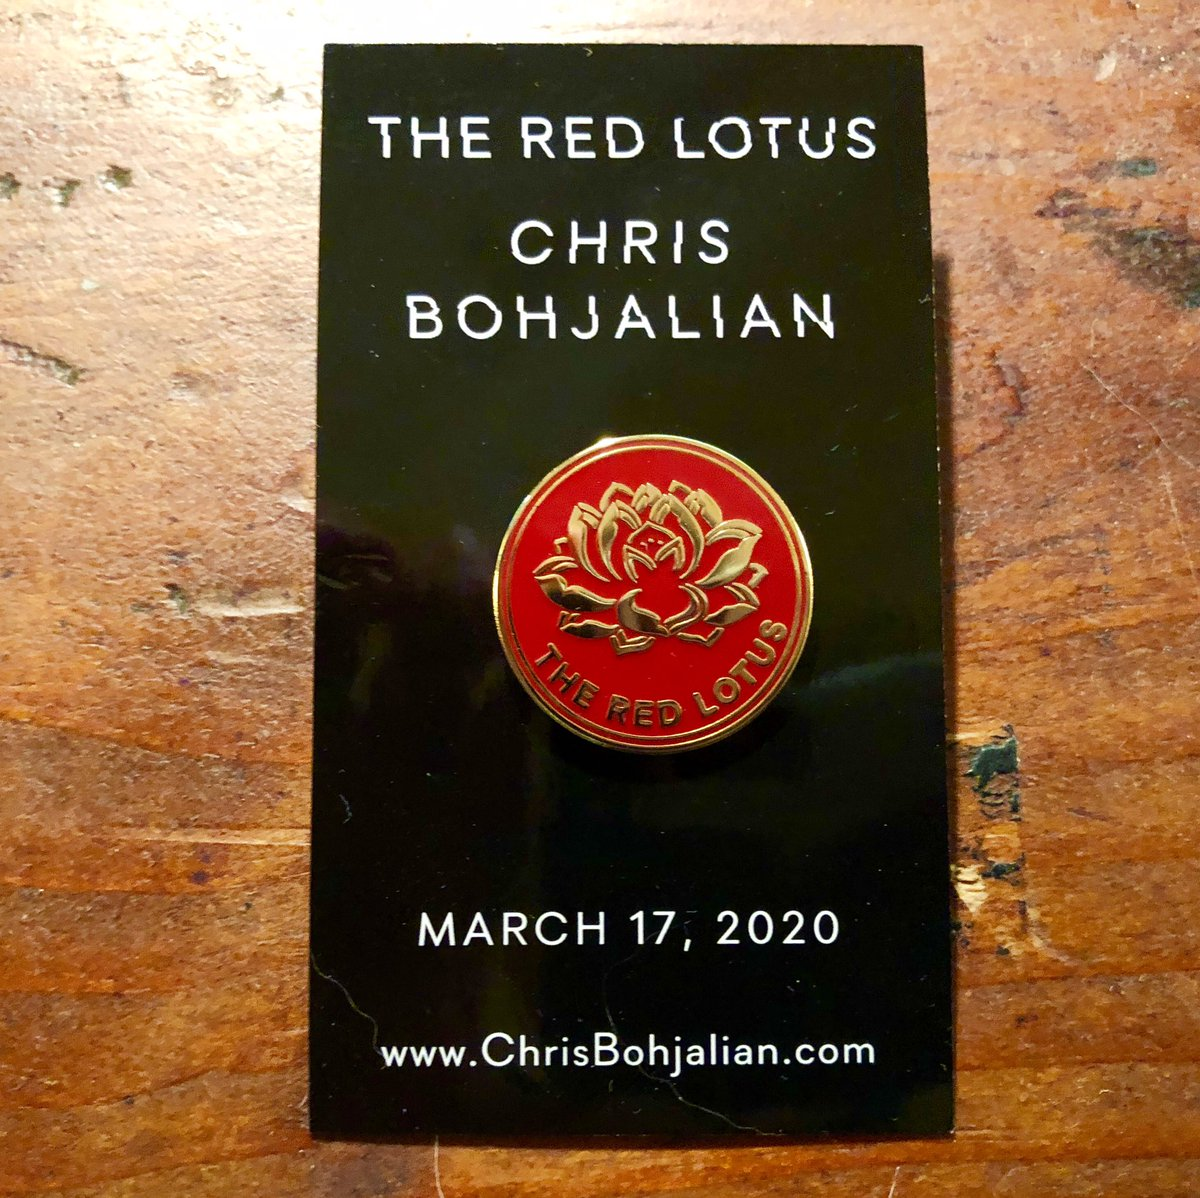 Galleys of THE RED LOTUS are on the way. Accompanying many of them? This beautiful red lotus pin and bookmark that @doubledaybooks designed. The thriller is set in Vietnam and Manhattan. Deepest thanks, as always, to the 13th floor! #fridayreads <br>http://pic.twitter.com/WzREbchKSU